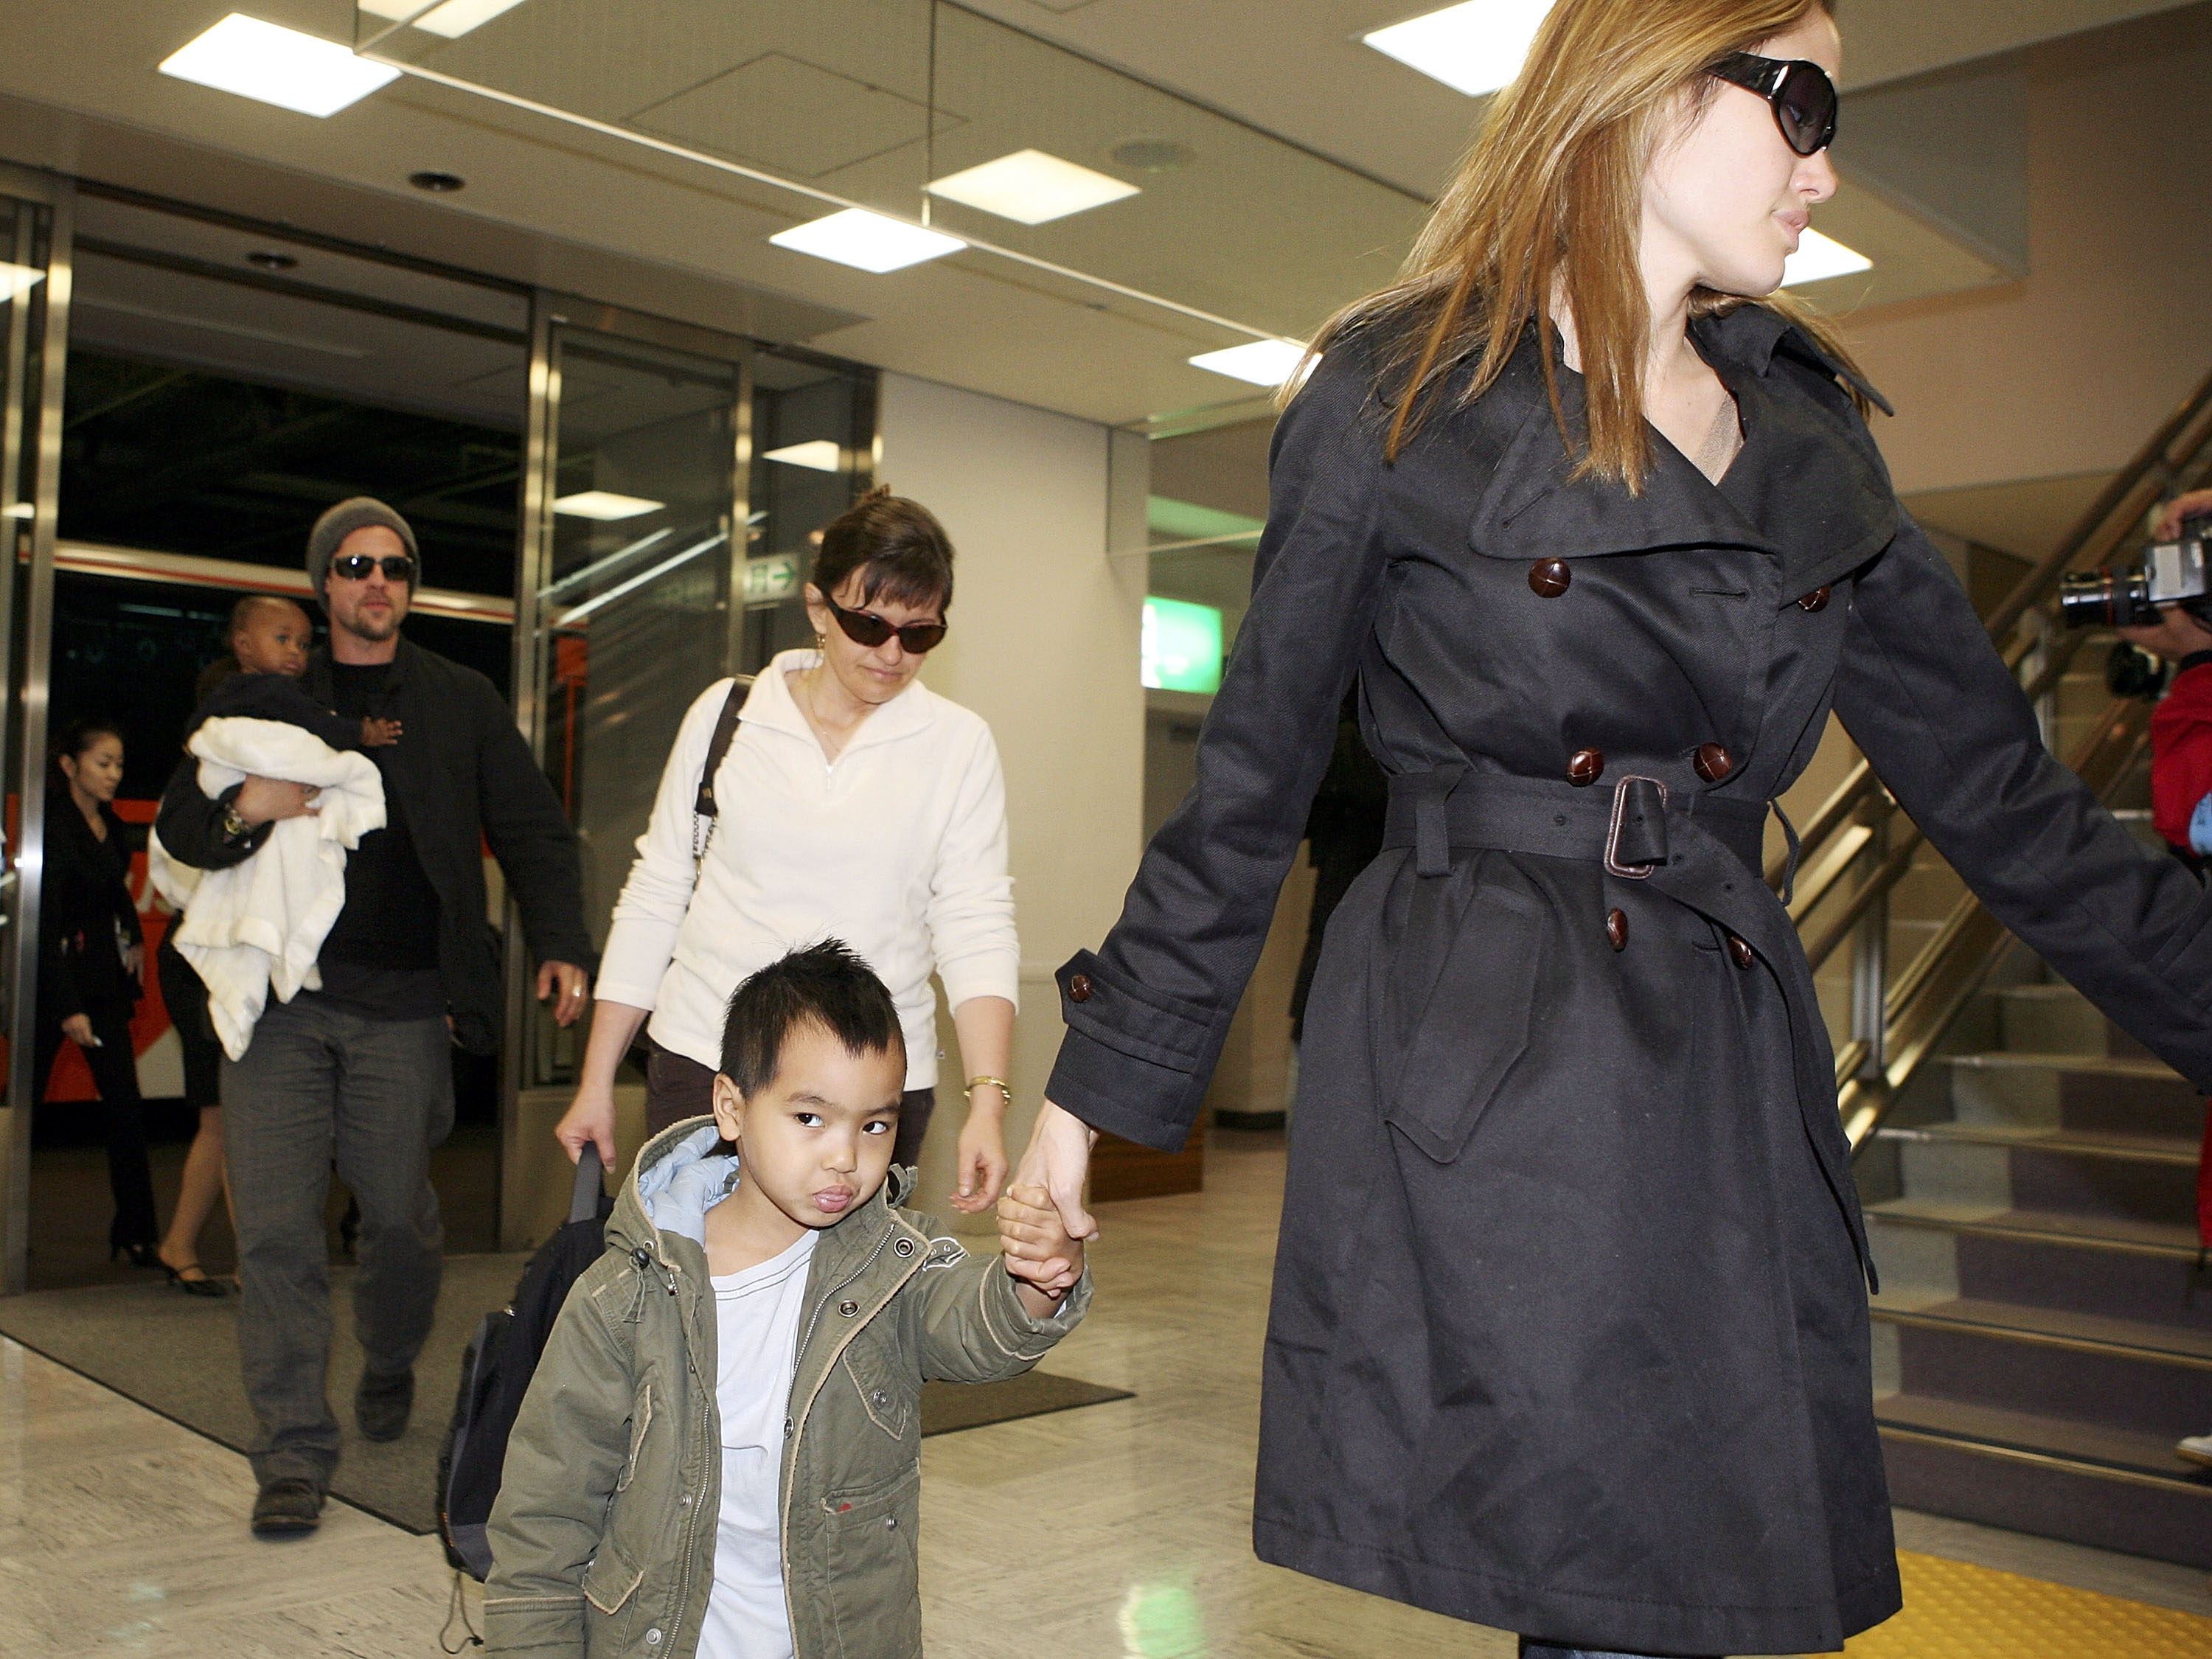 Actor Brad Pitt (L) and actress Angelina Jolie (R) arrive with Jolie's children Zahara Marley Jolie and Maddox Jolie at the New Tokyo International Airport on November 27, 2005 in Narita, Japan. (Photo by Koichi Kamoshida/Getty Images)